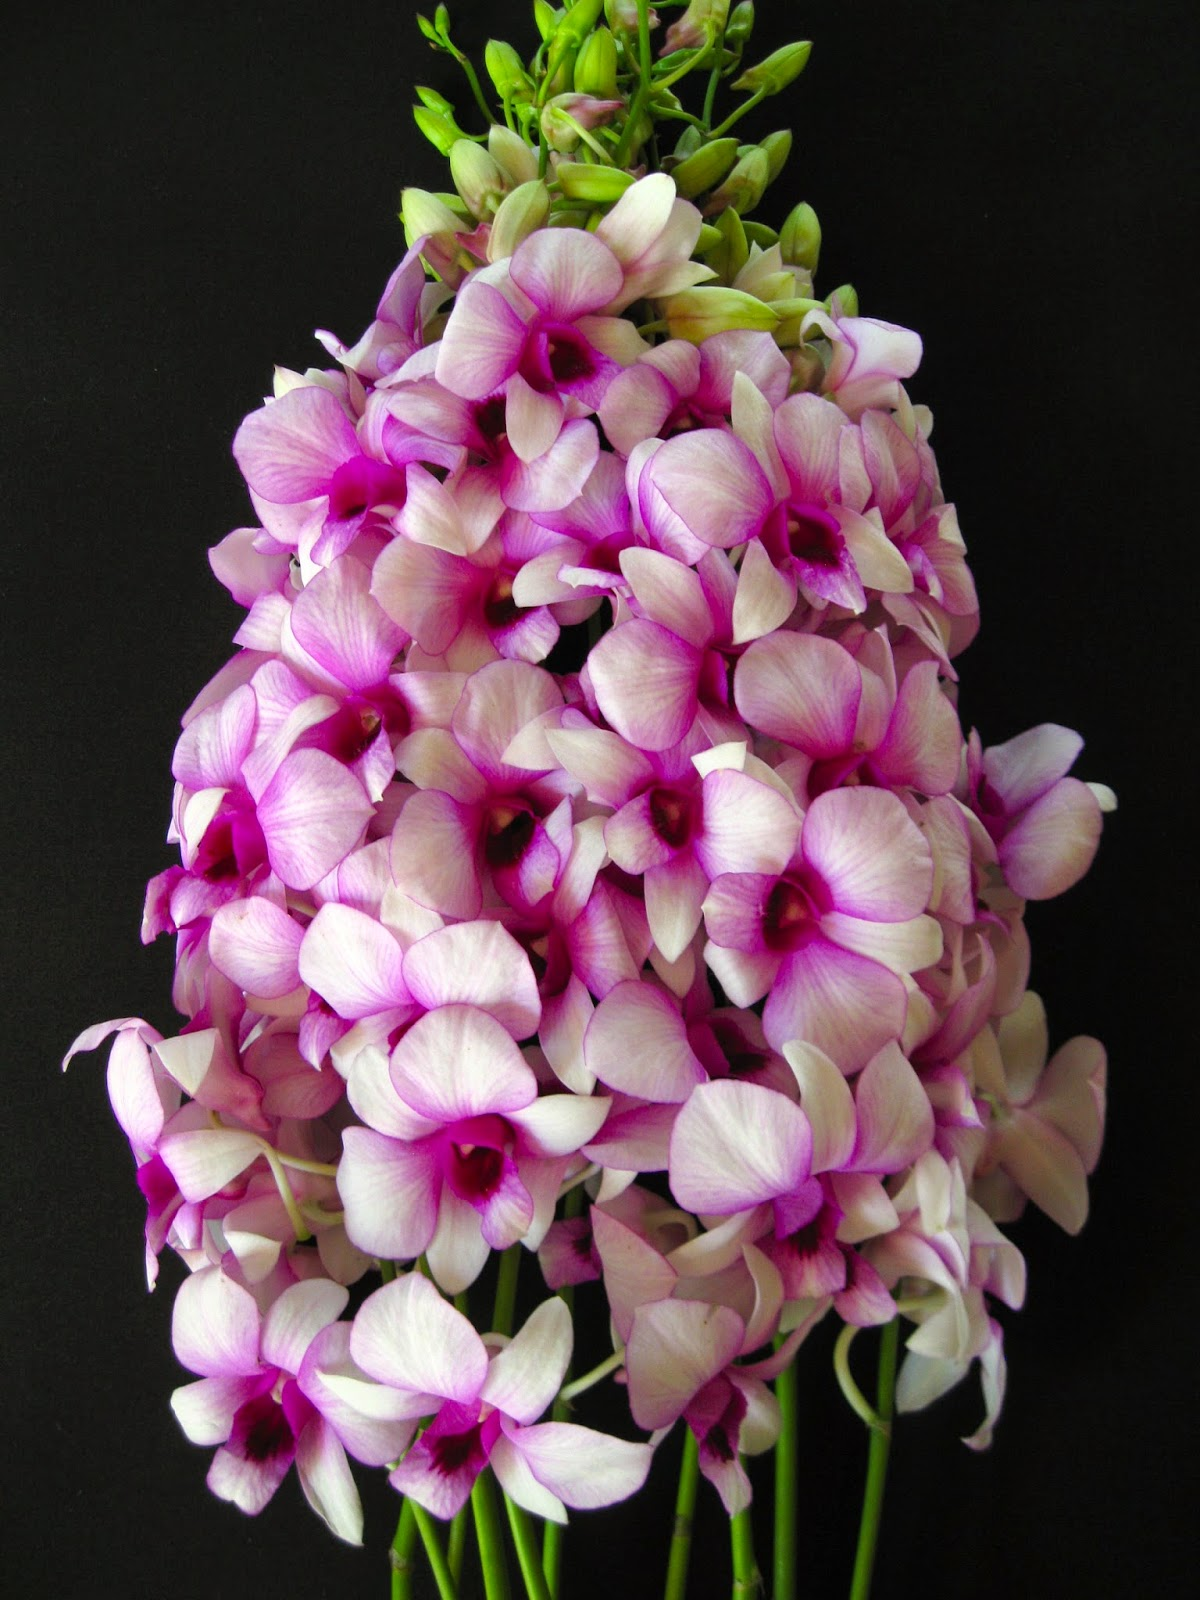 mothers day orchid flowers express your wishes of love and adoration because they are long lasting and beautiful to look at mothers day orchid flowers : day orchid decor